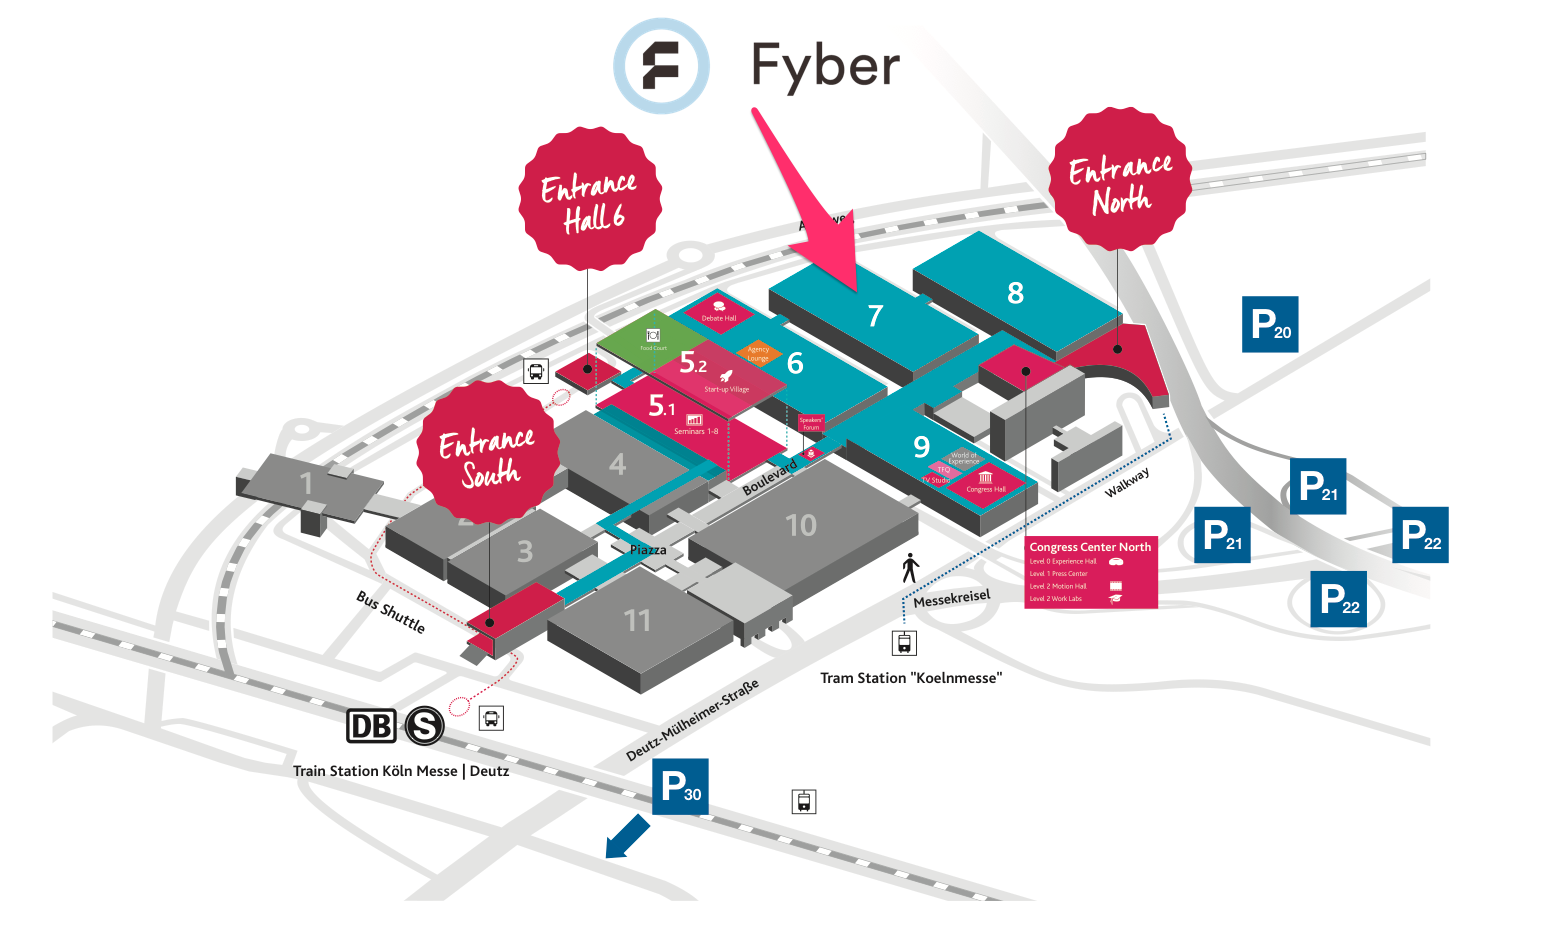 Dmexco 2017 site plan Fyber booth location